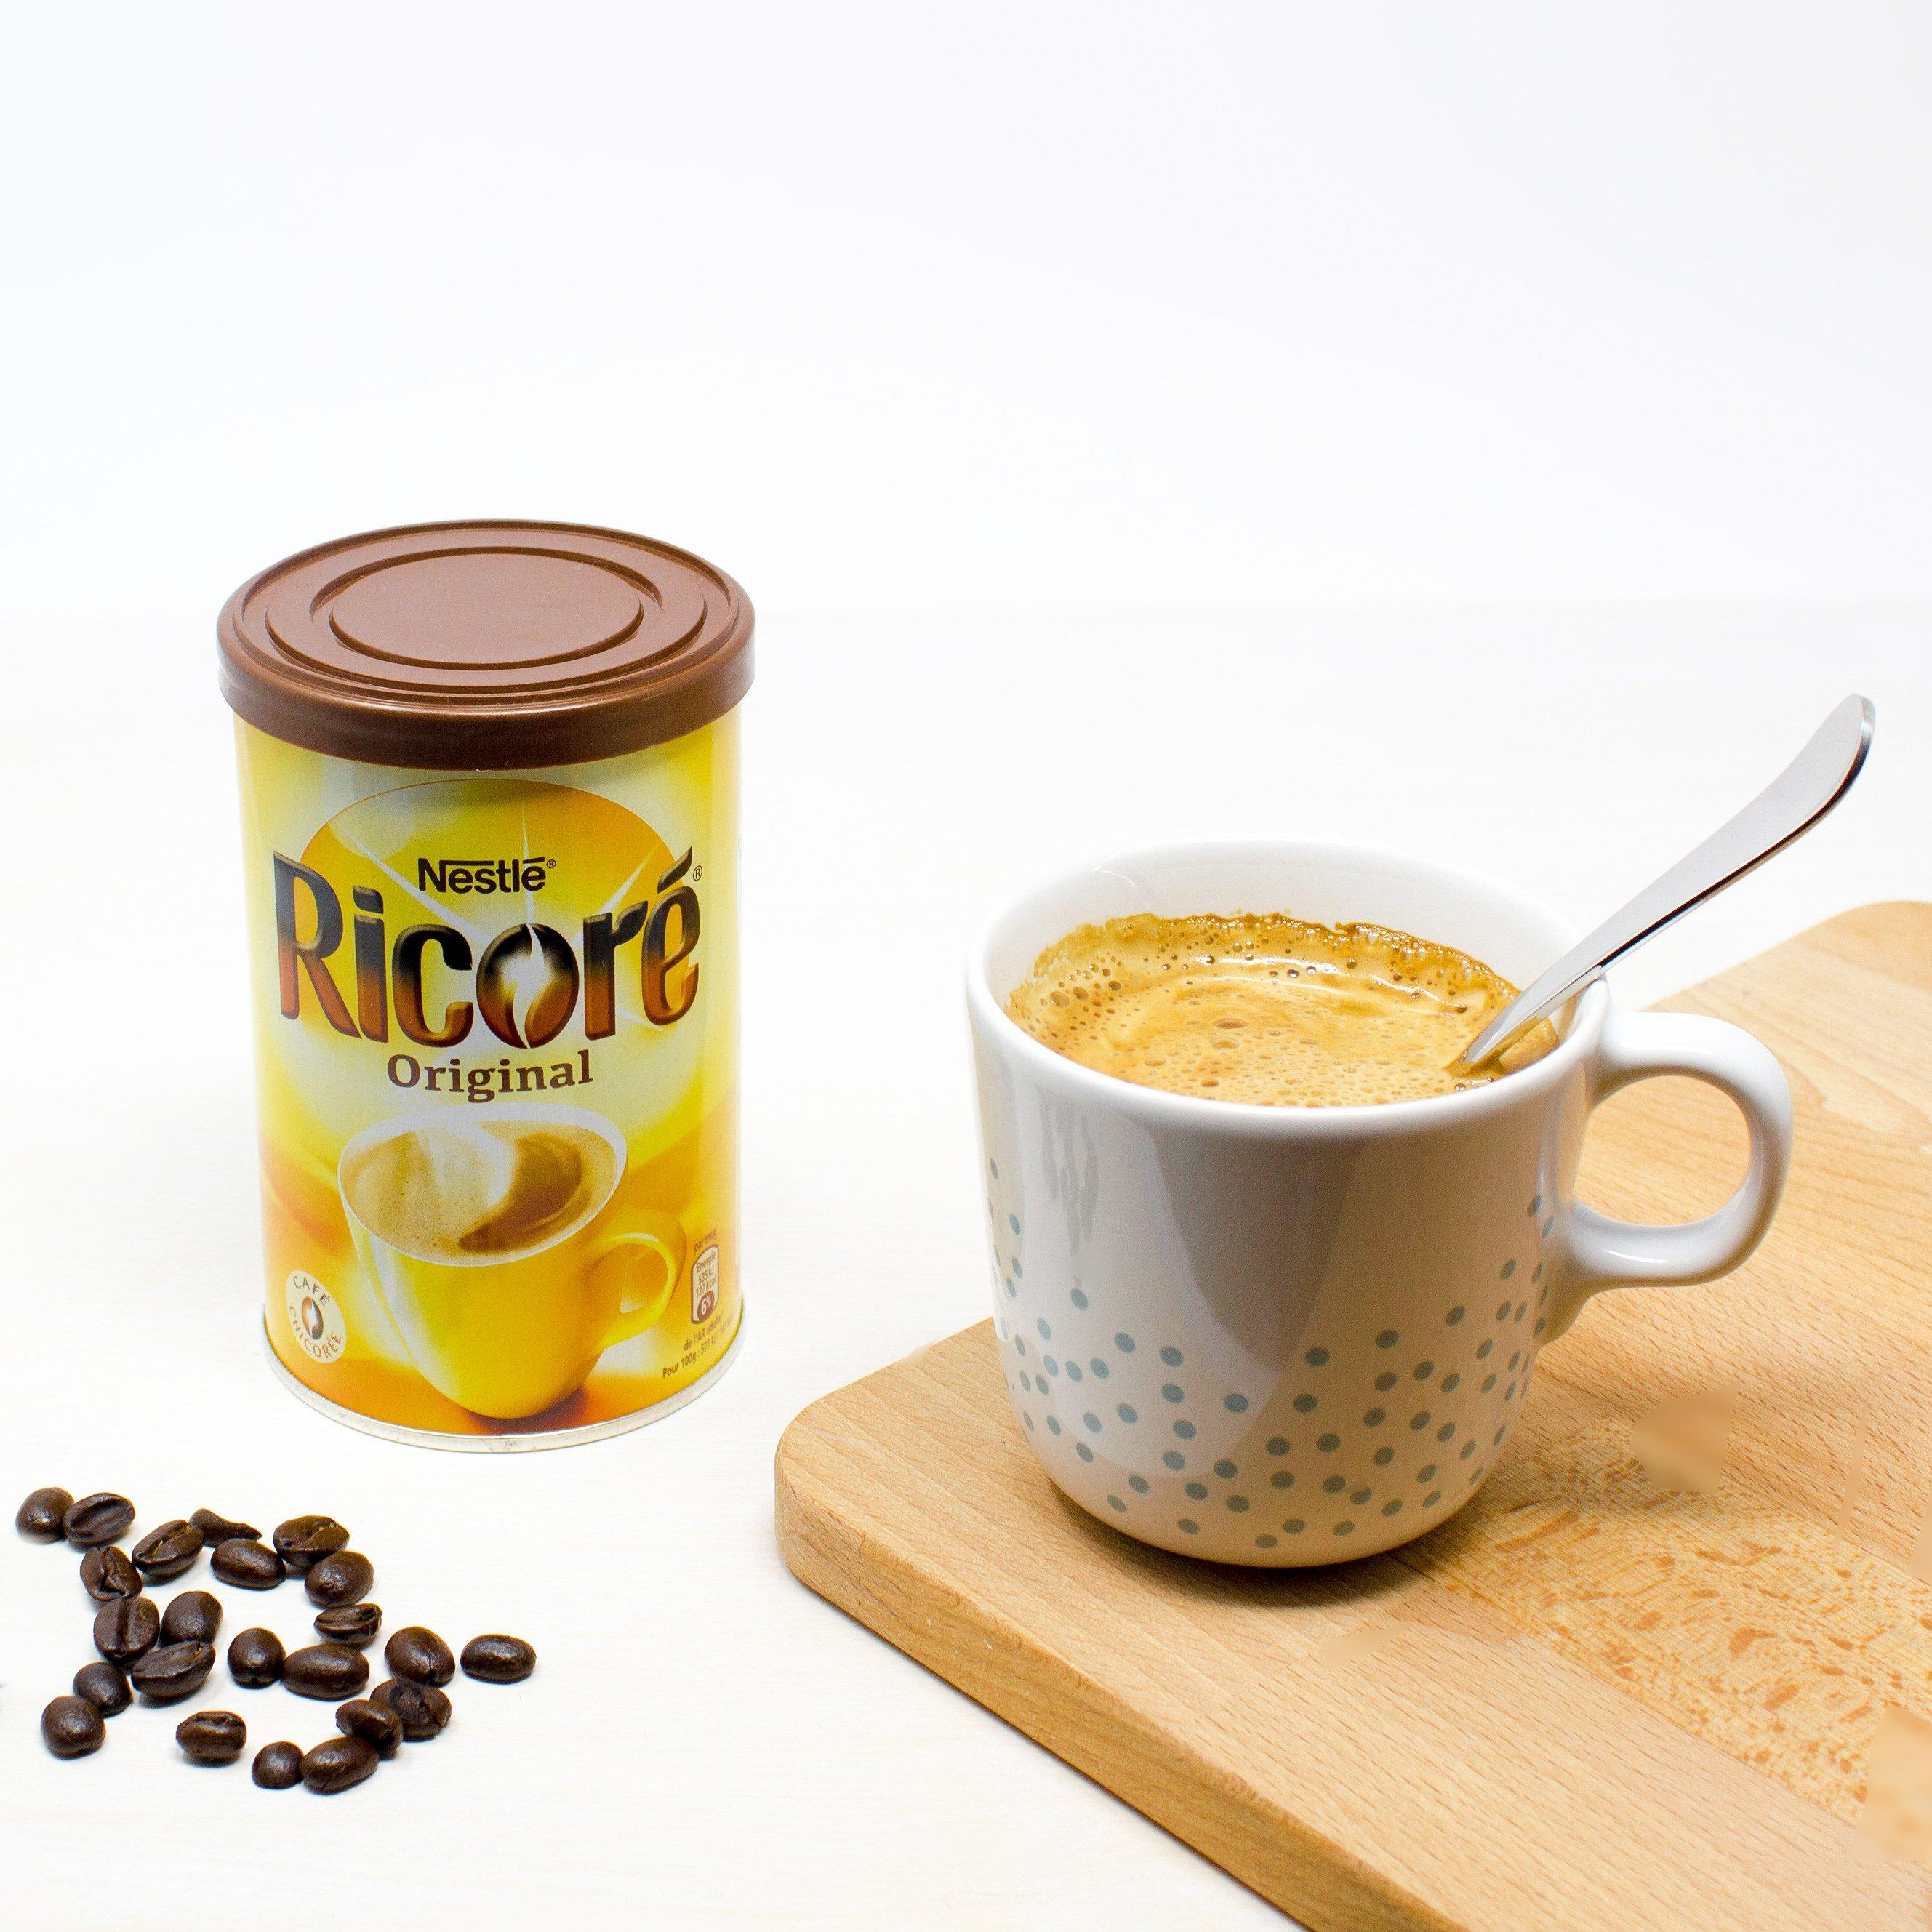 Chicory Coffee Ricore Nestle Buy French Cafe Au Lait With Chicory Online In The